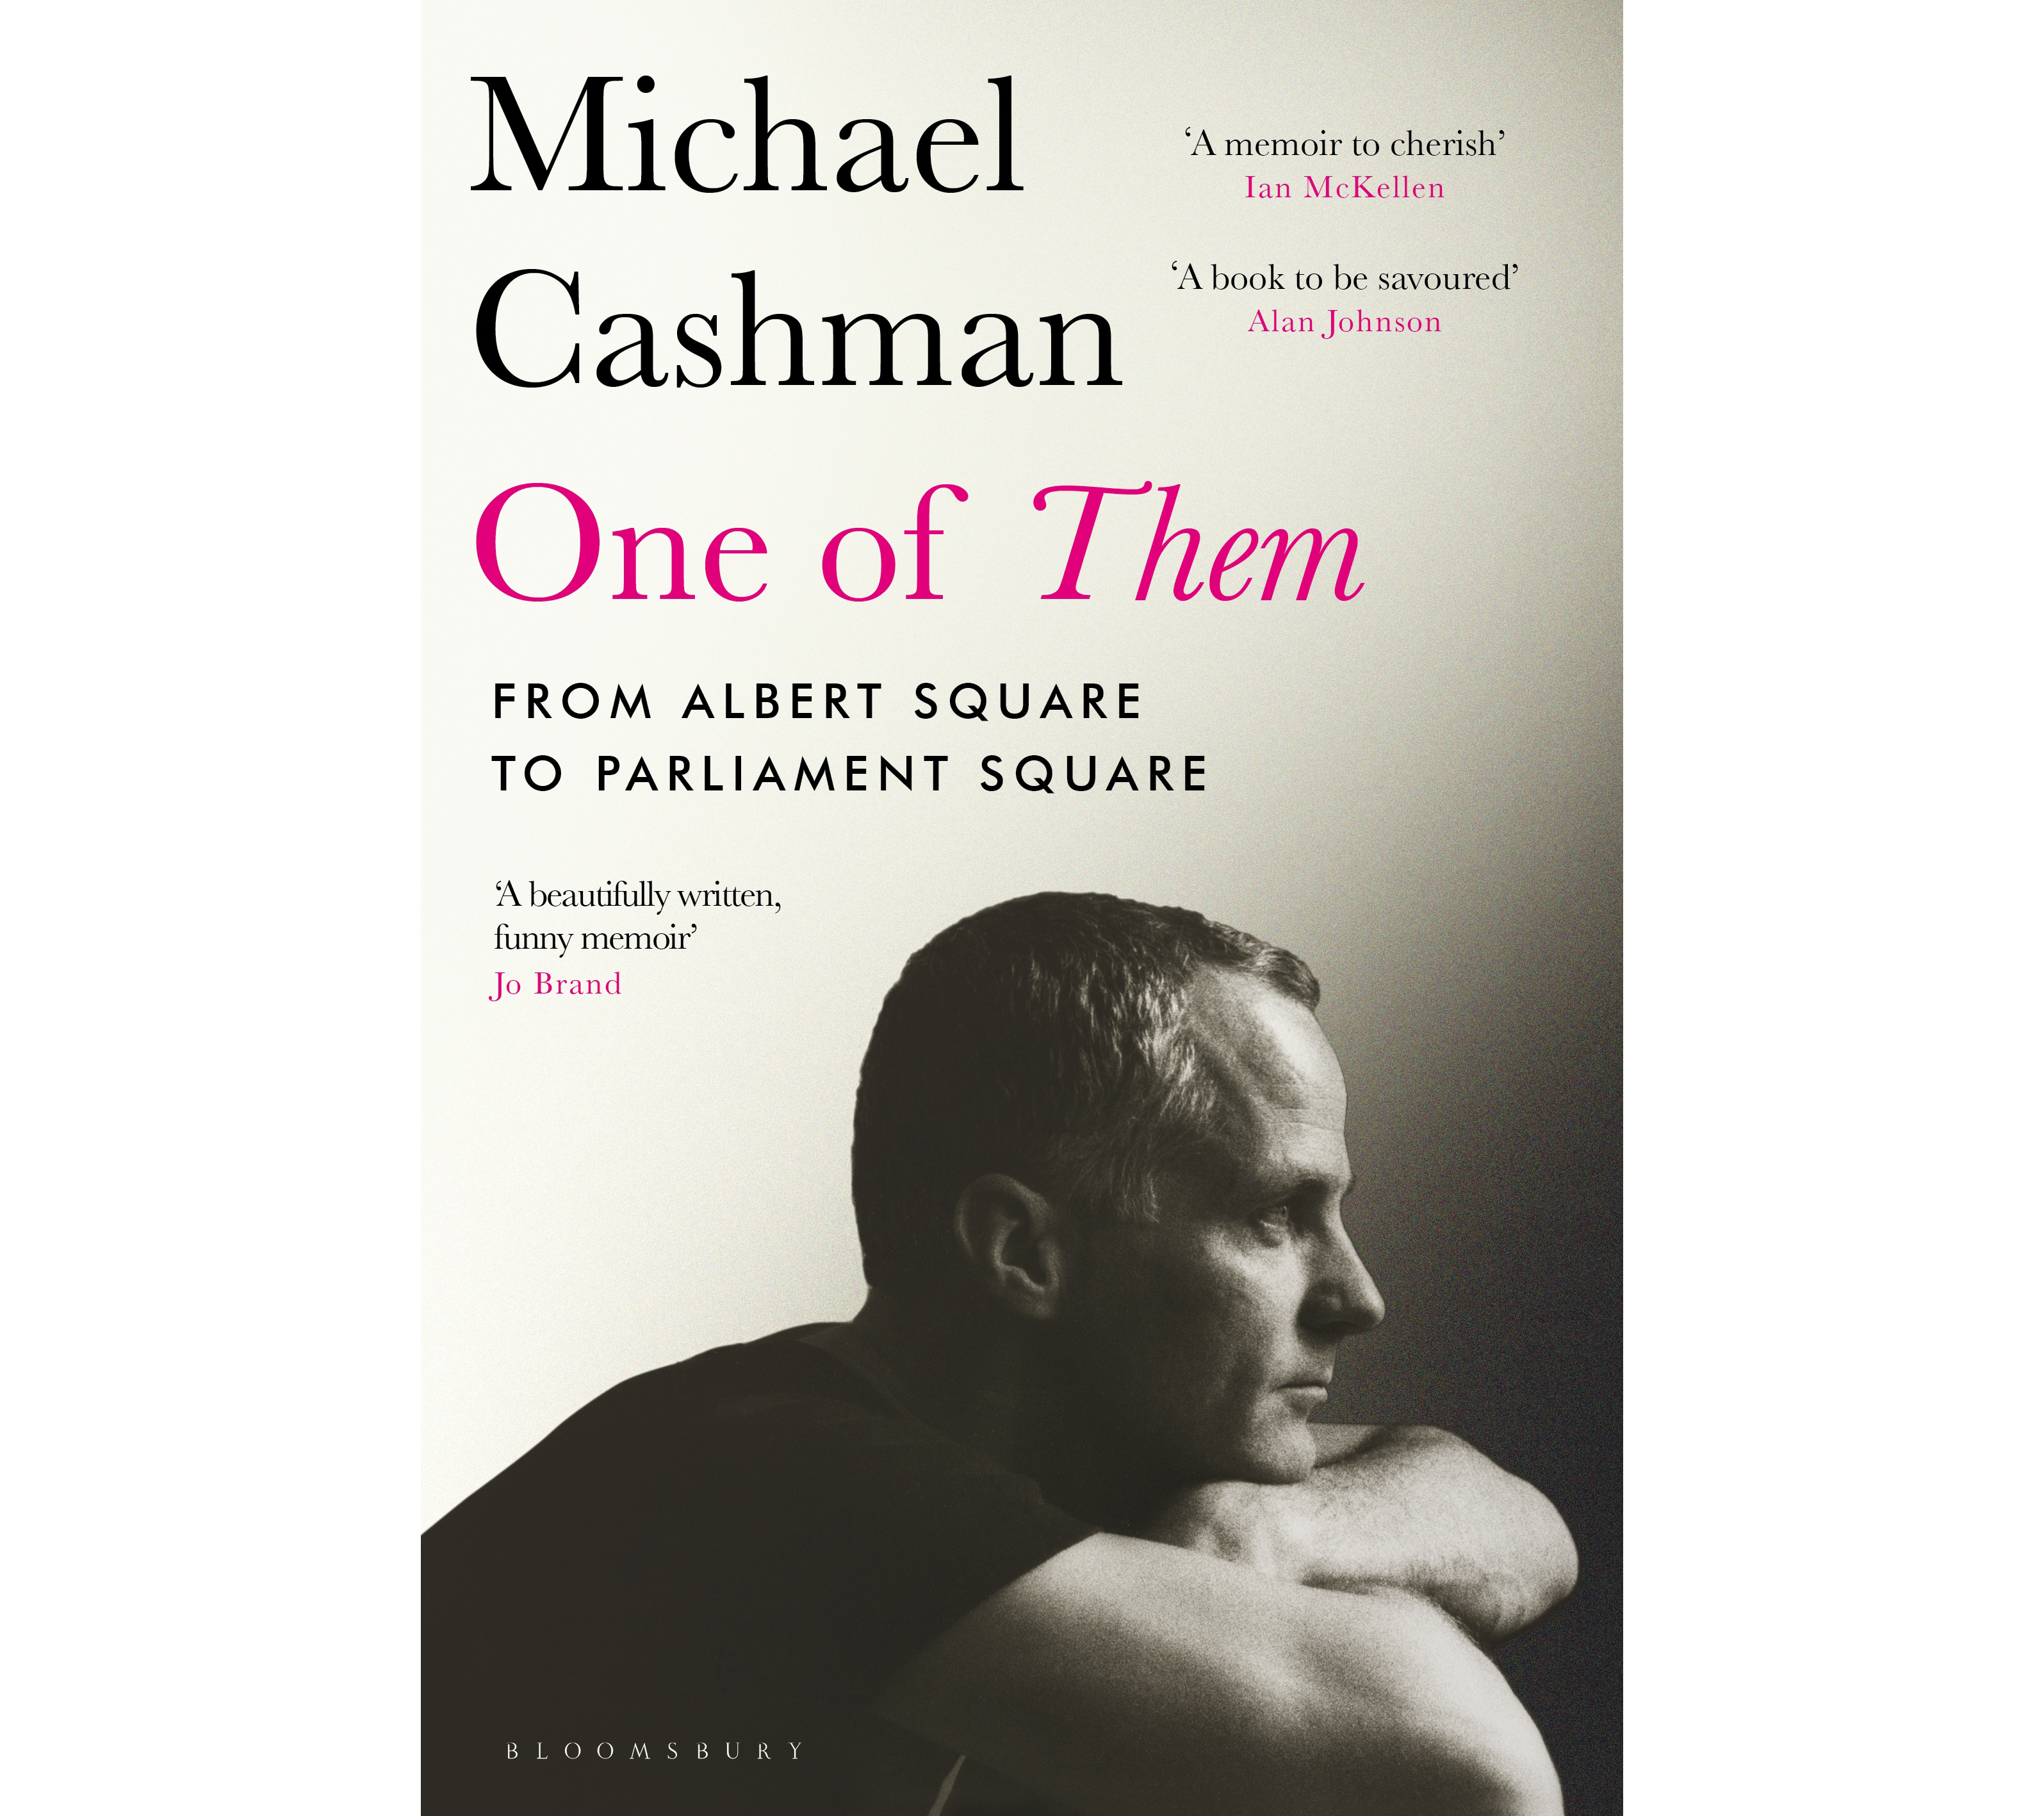 One Of Them by Michael Cashman (Bloomsbury/PA)